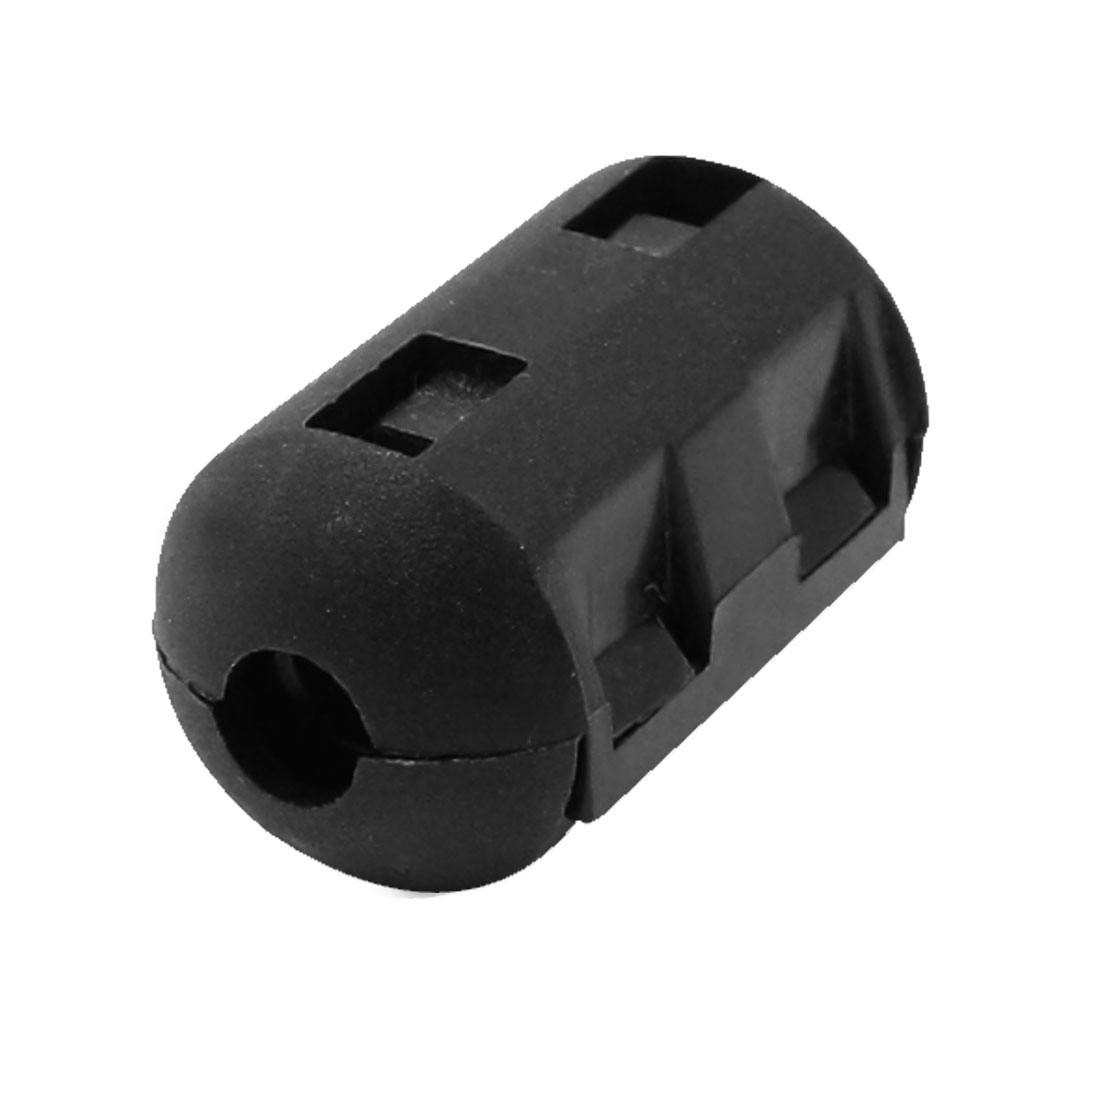 UF50 Noise Filter Ferrite Clip for 5mm Diameter Audio Video Cable